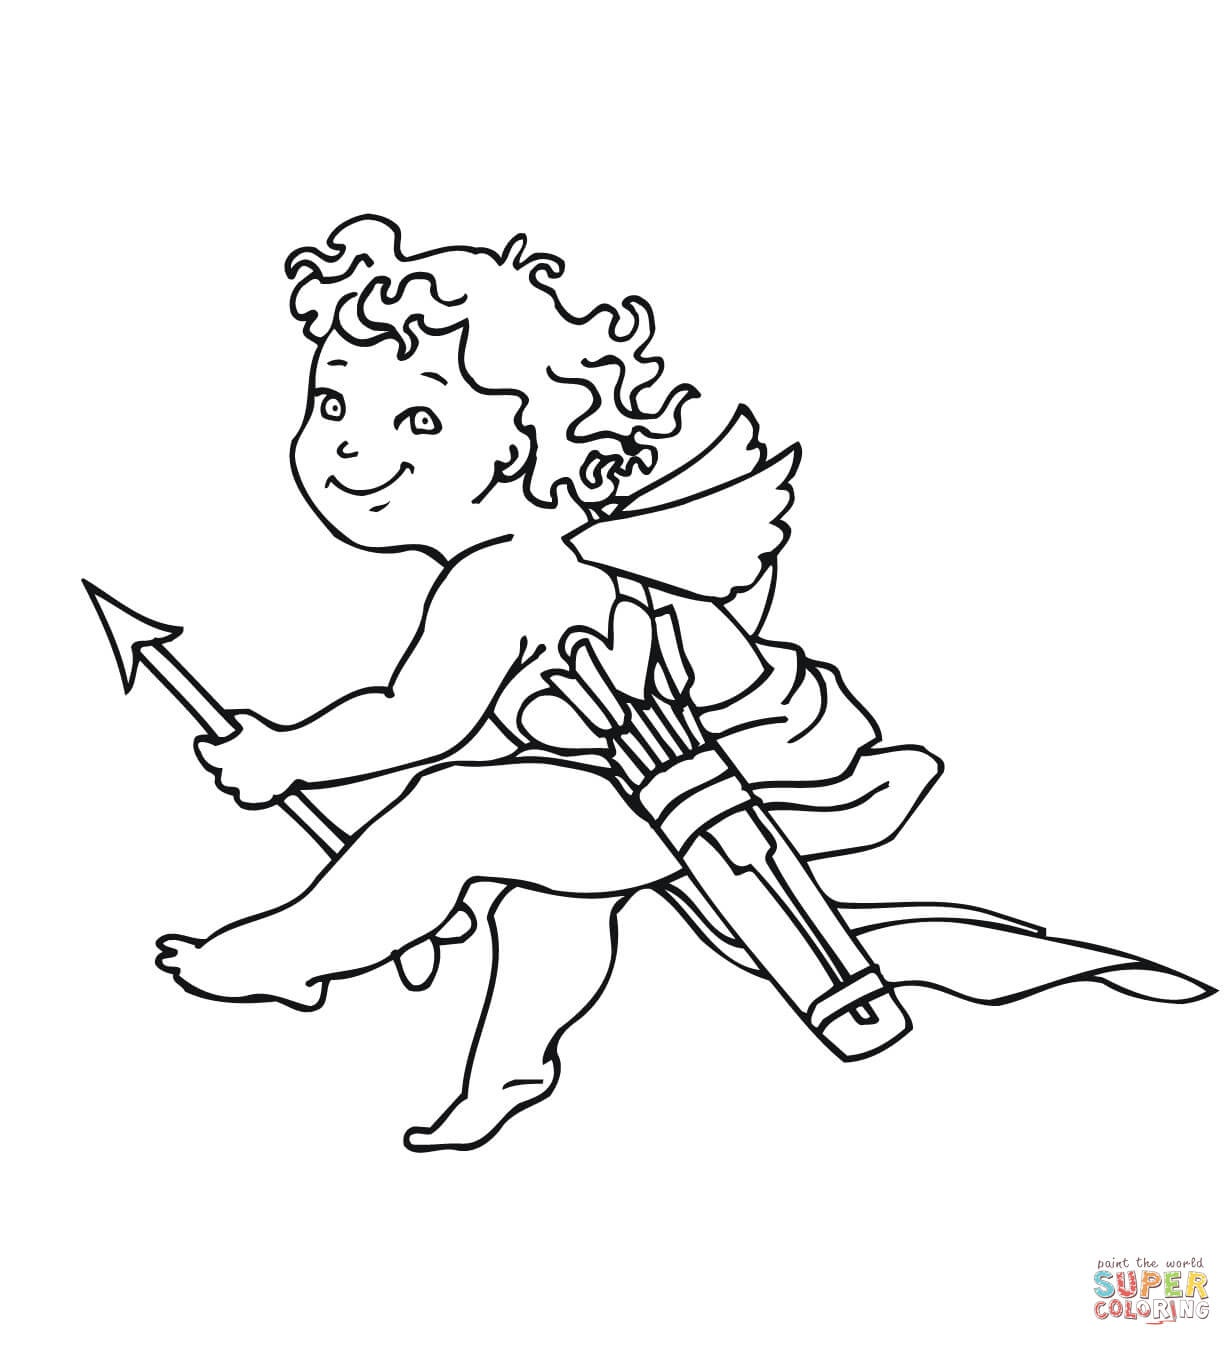 Valentine's Day Cupid Coloring Page | Free Printable Coloring Pages - Free Printable Pictures Of Cupid